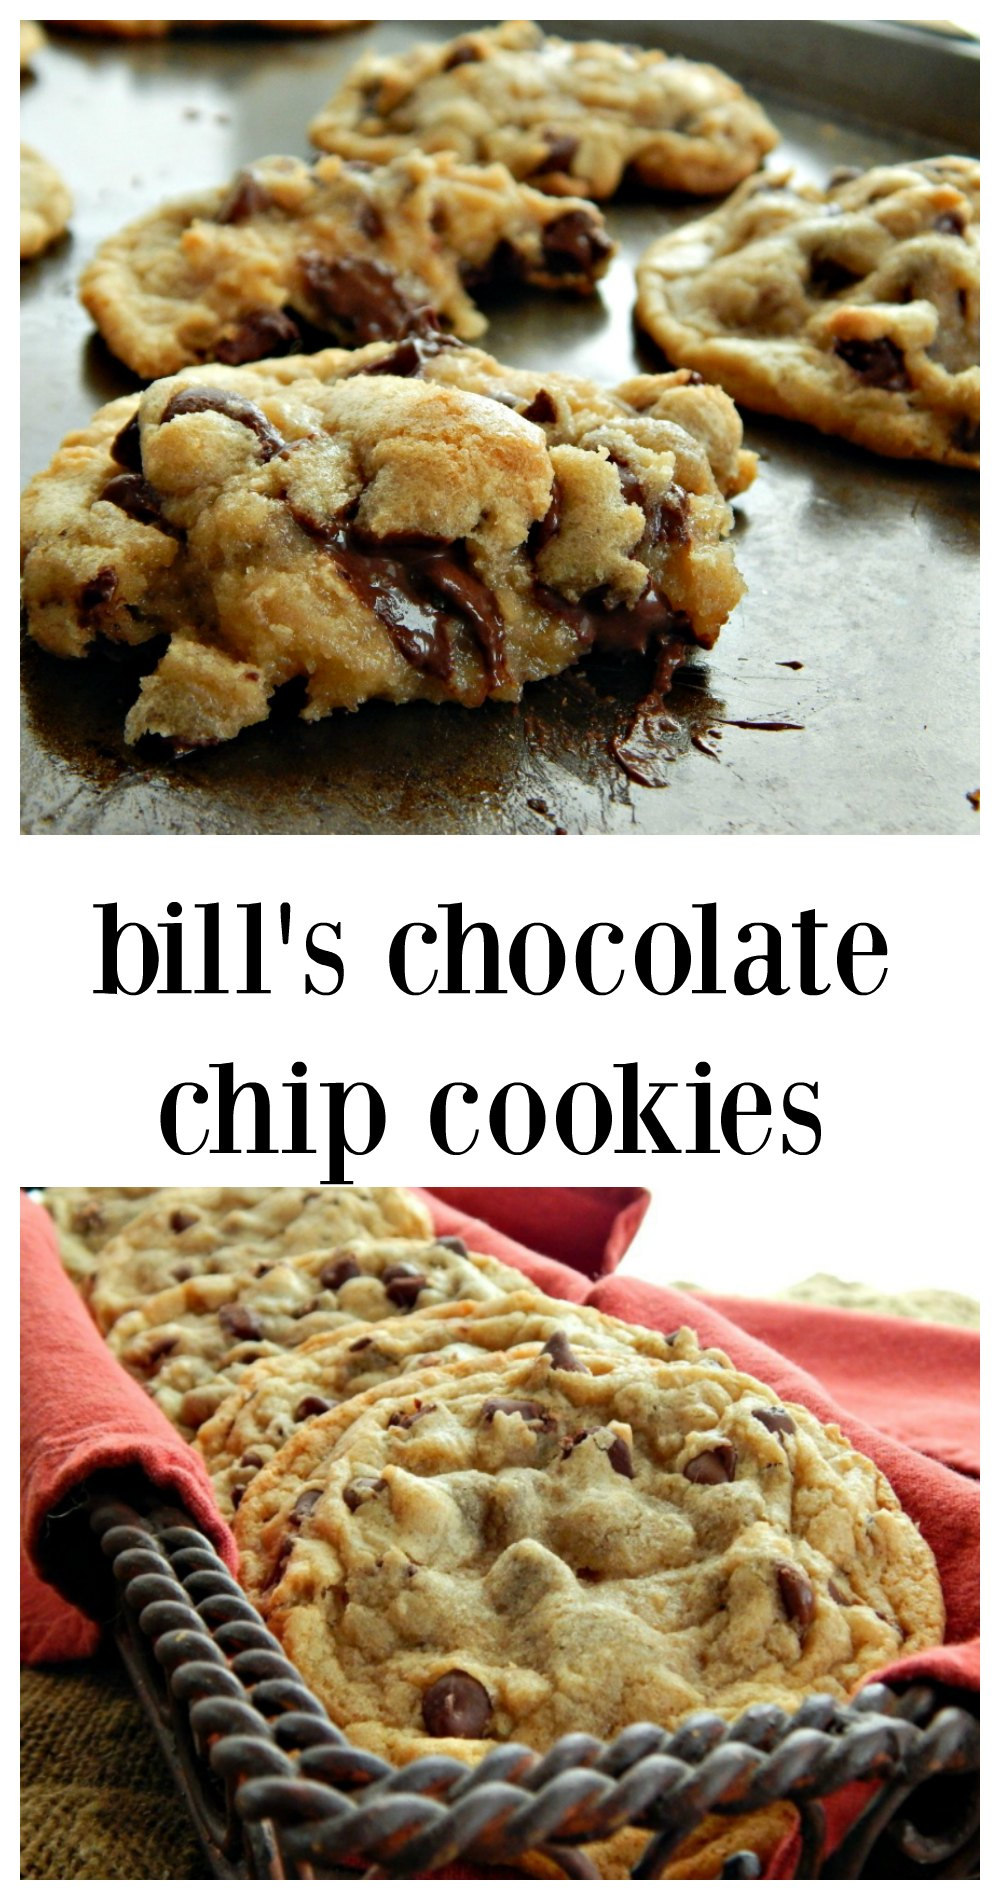 The best chocolate chip cookie: make them thick and chewy, thin and crispy or thin and chewy! Easy, mix by hand, and buttery, rich, ooey gooey! Large Gourmet Cookies Loaded with Chocolate Chips! #BestChocolateChipCookie #OoeyGooeyChewyChocolateChipCookie #BonAppetiteChcolateChipCookie #GourmetChocolateChipCookie #EasyChocolateChipCookie